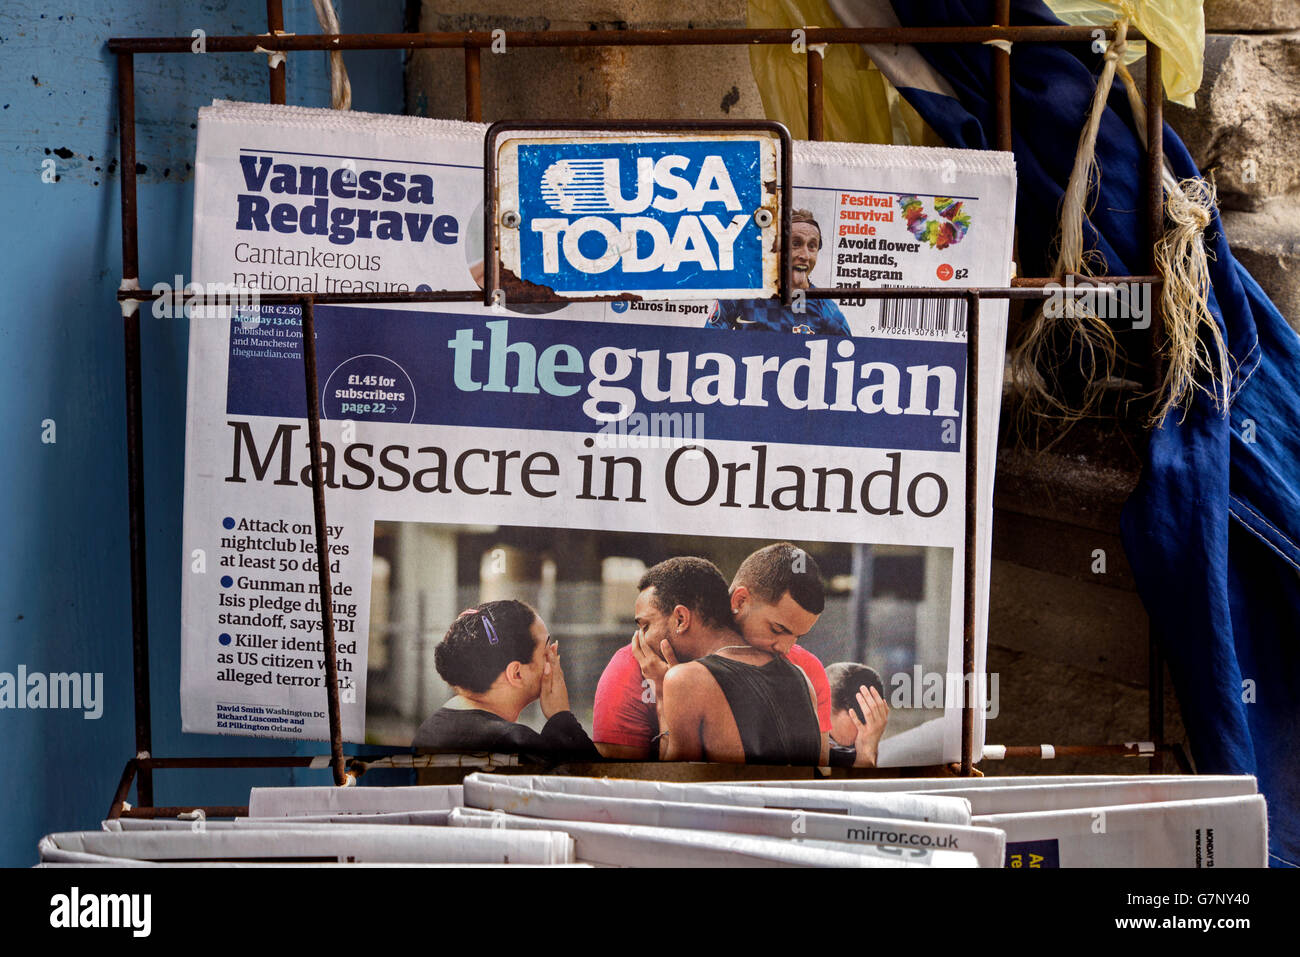 Orlando shooting headline in The Guardian newspaper. - Stock Image